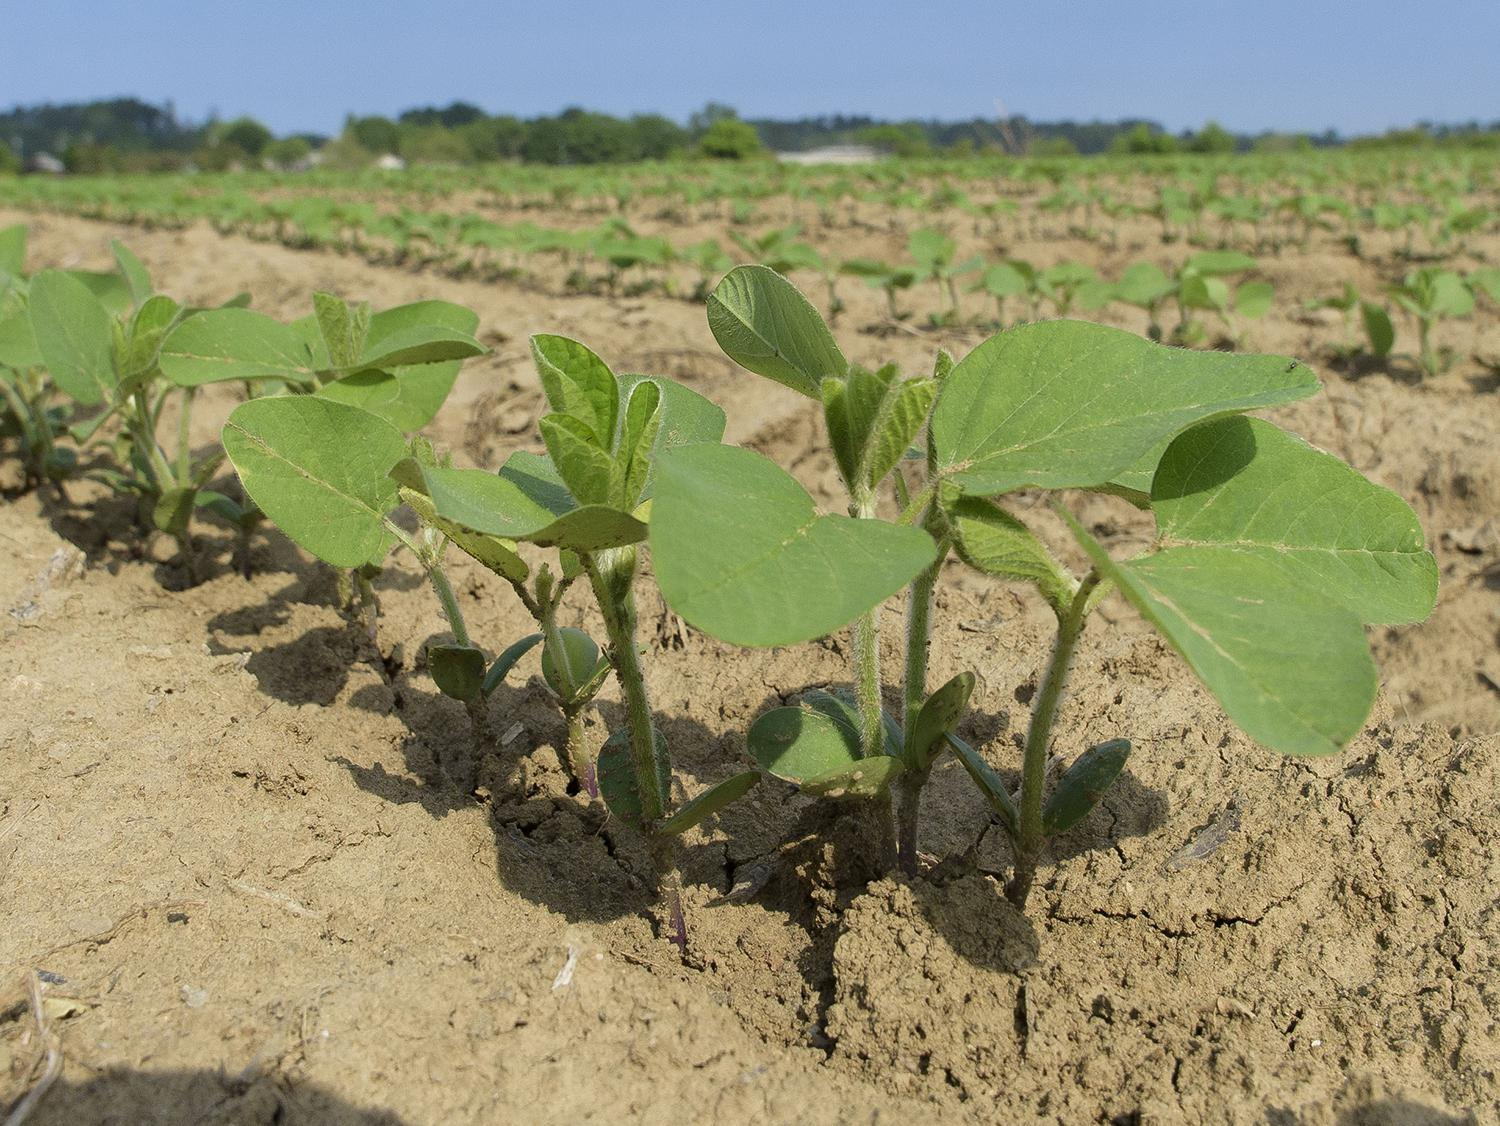 Small soybean plants stand a few inches tall against a blue sky.